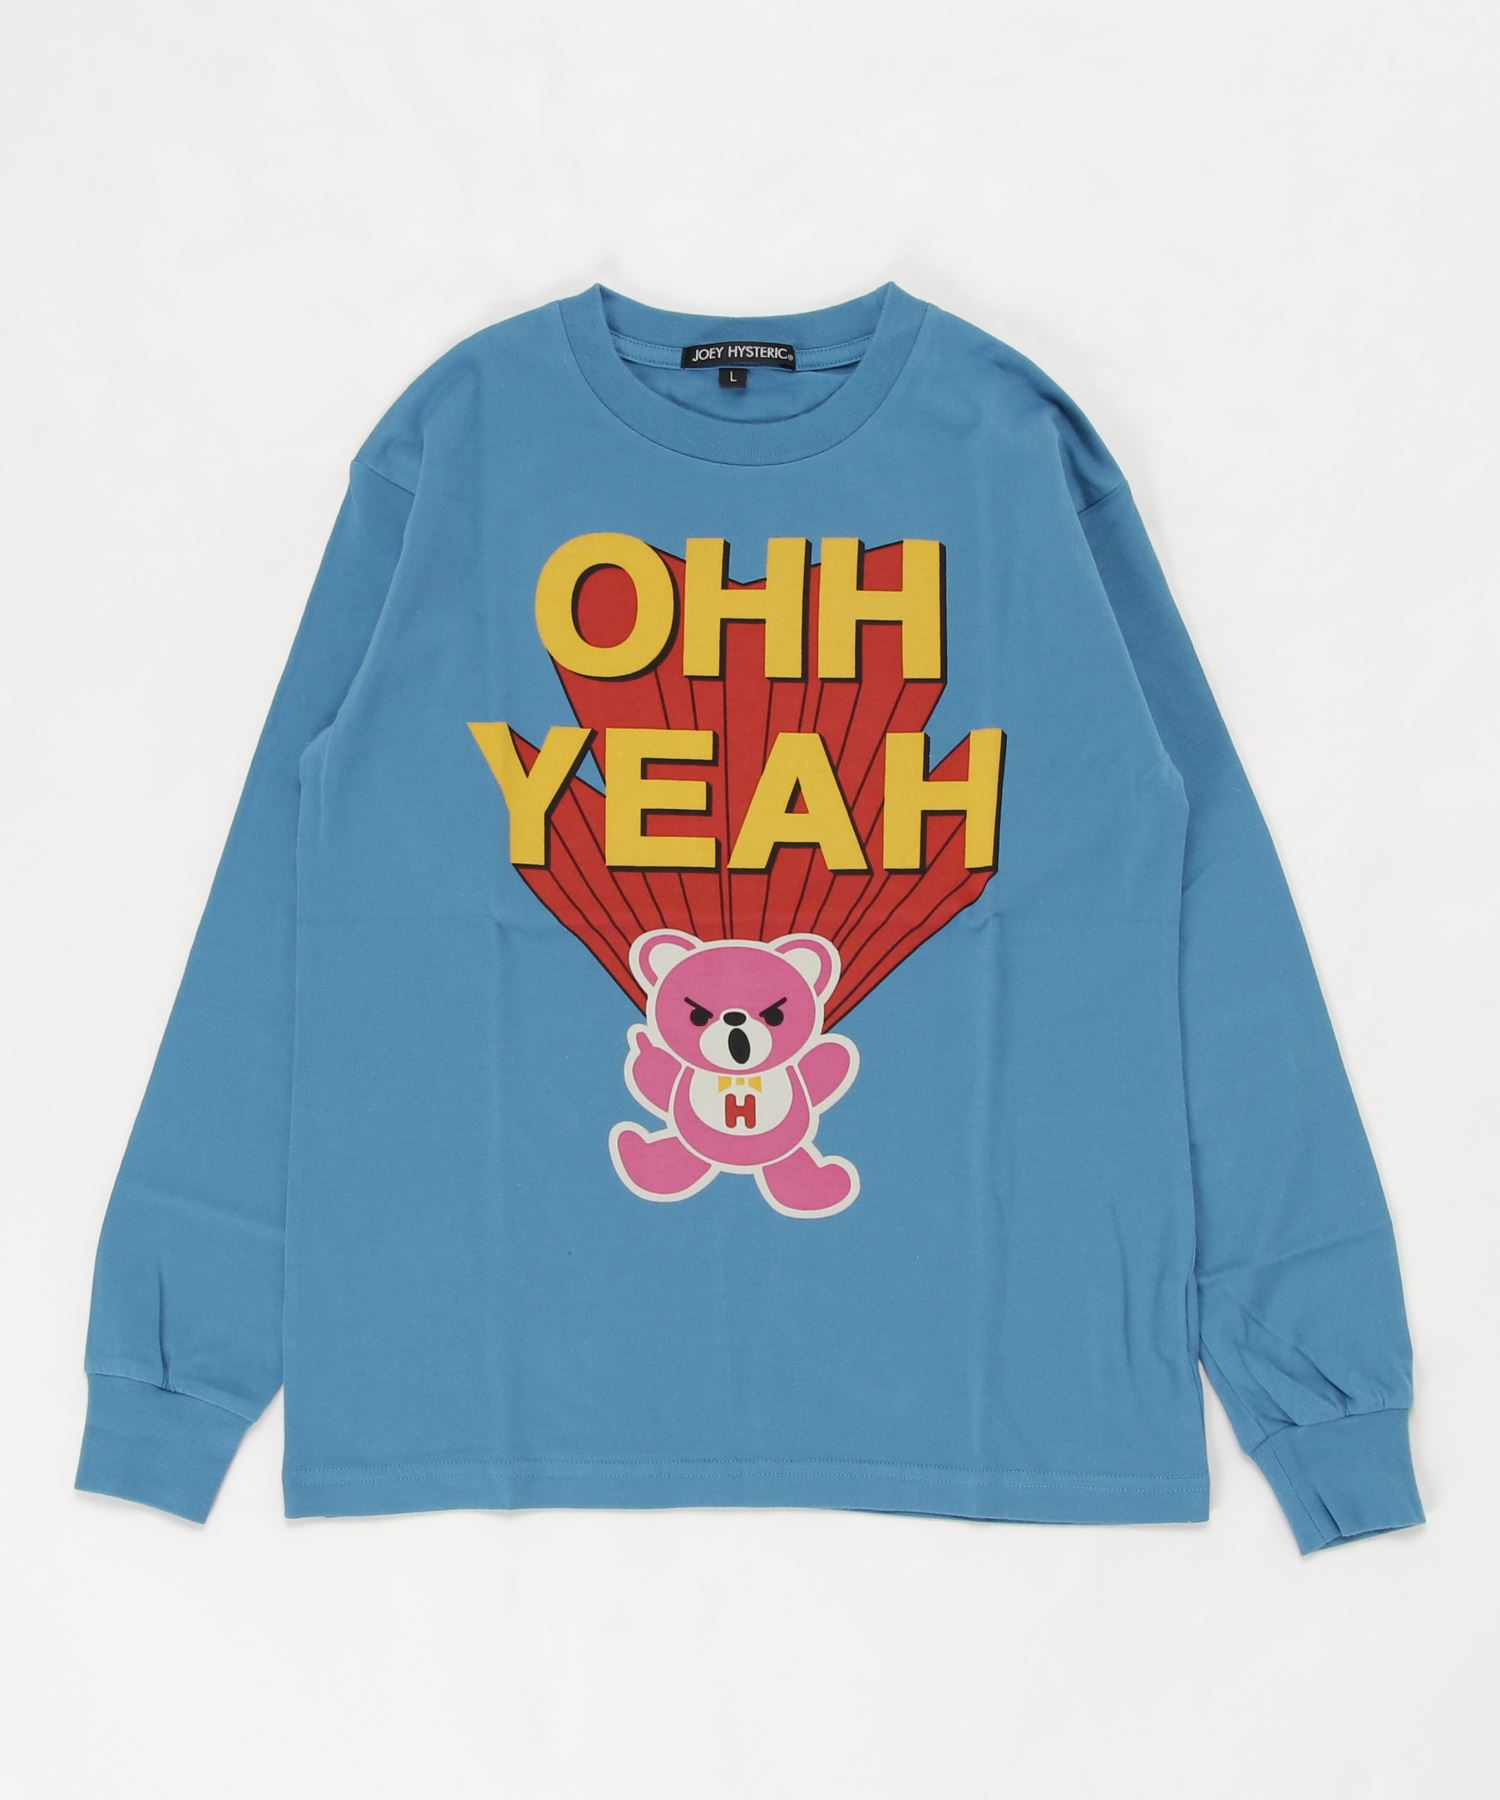 OHH YEAH Tシャツ【L】